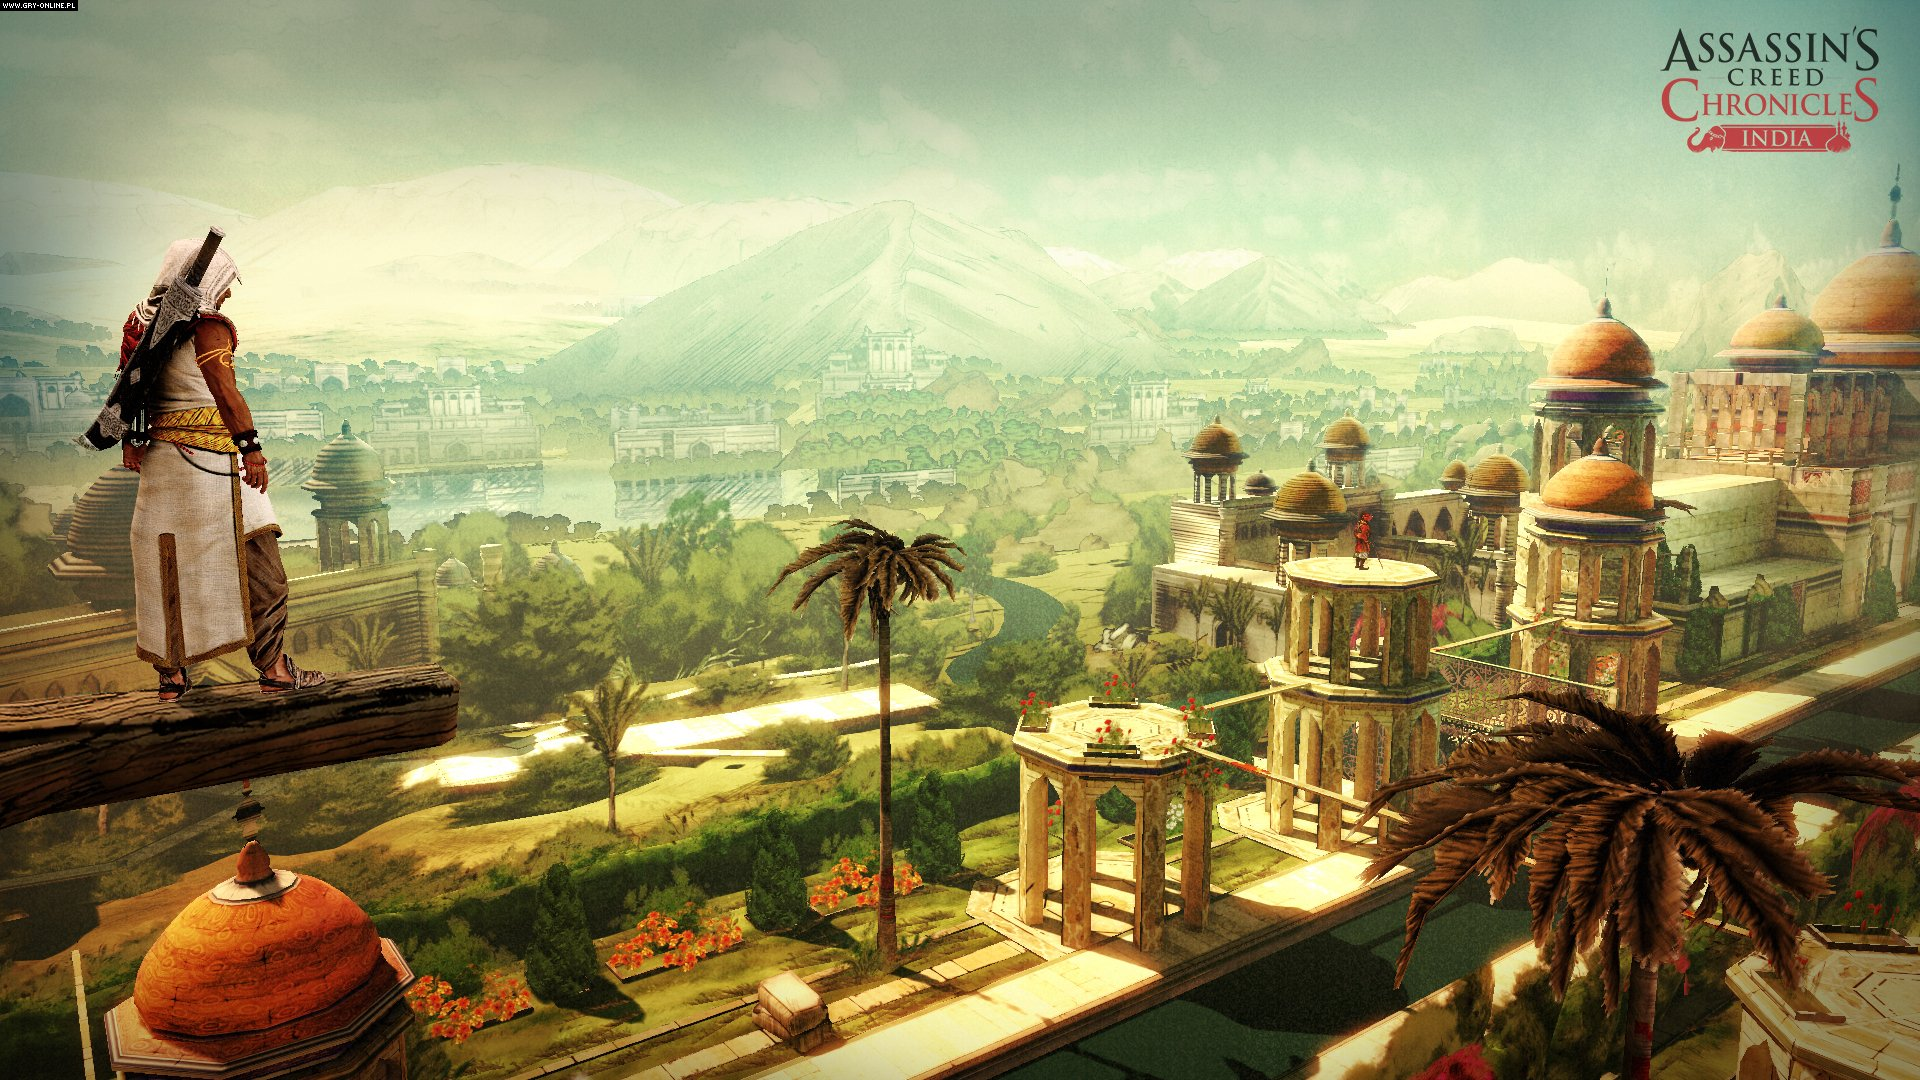 Assassin's Creed Chronicles: India PC, PS4, XONE Games Image 10/10, Climax Studios, Ubisoft